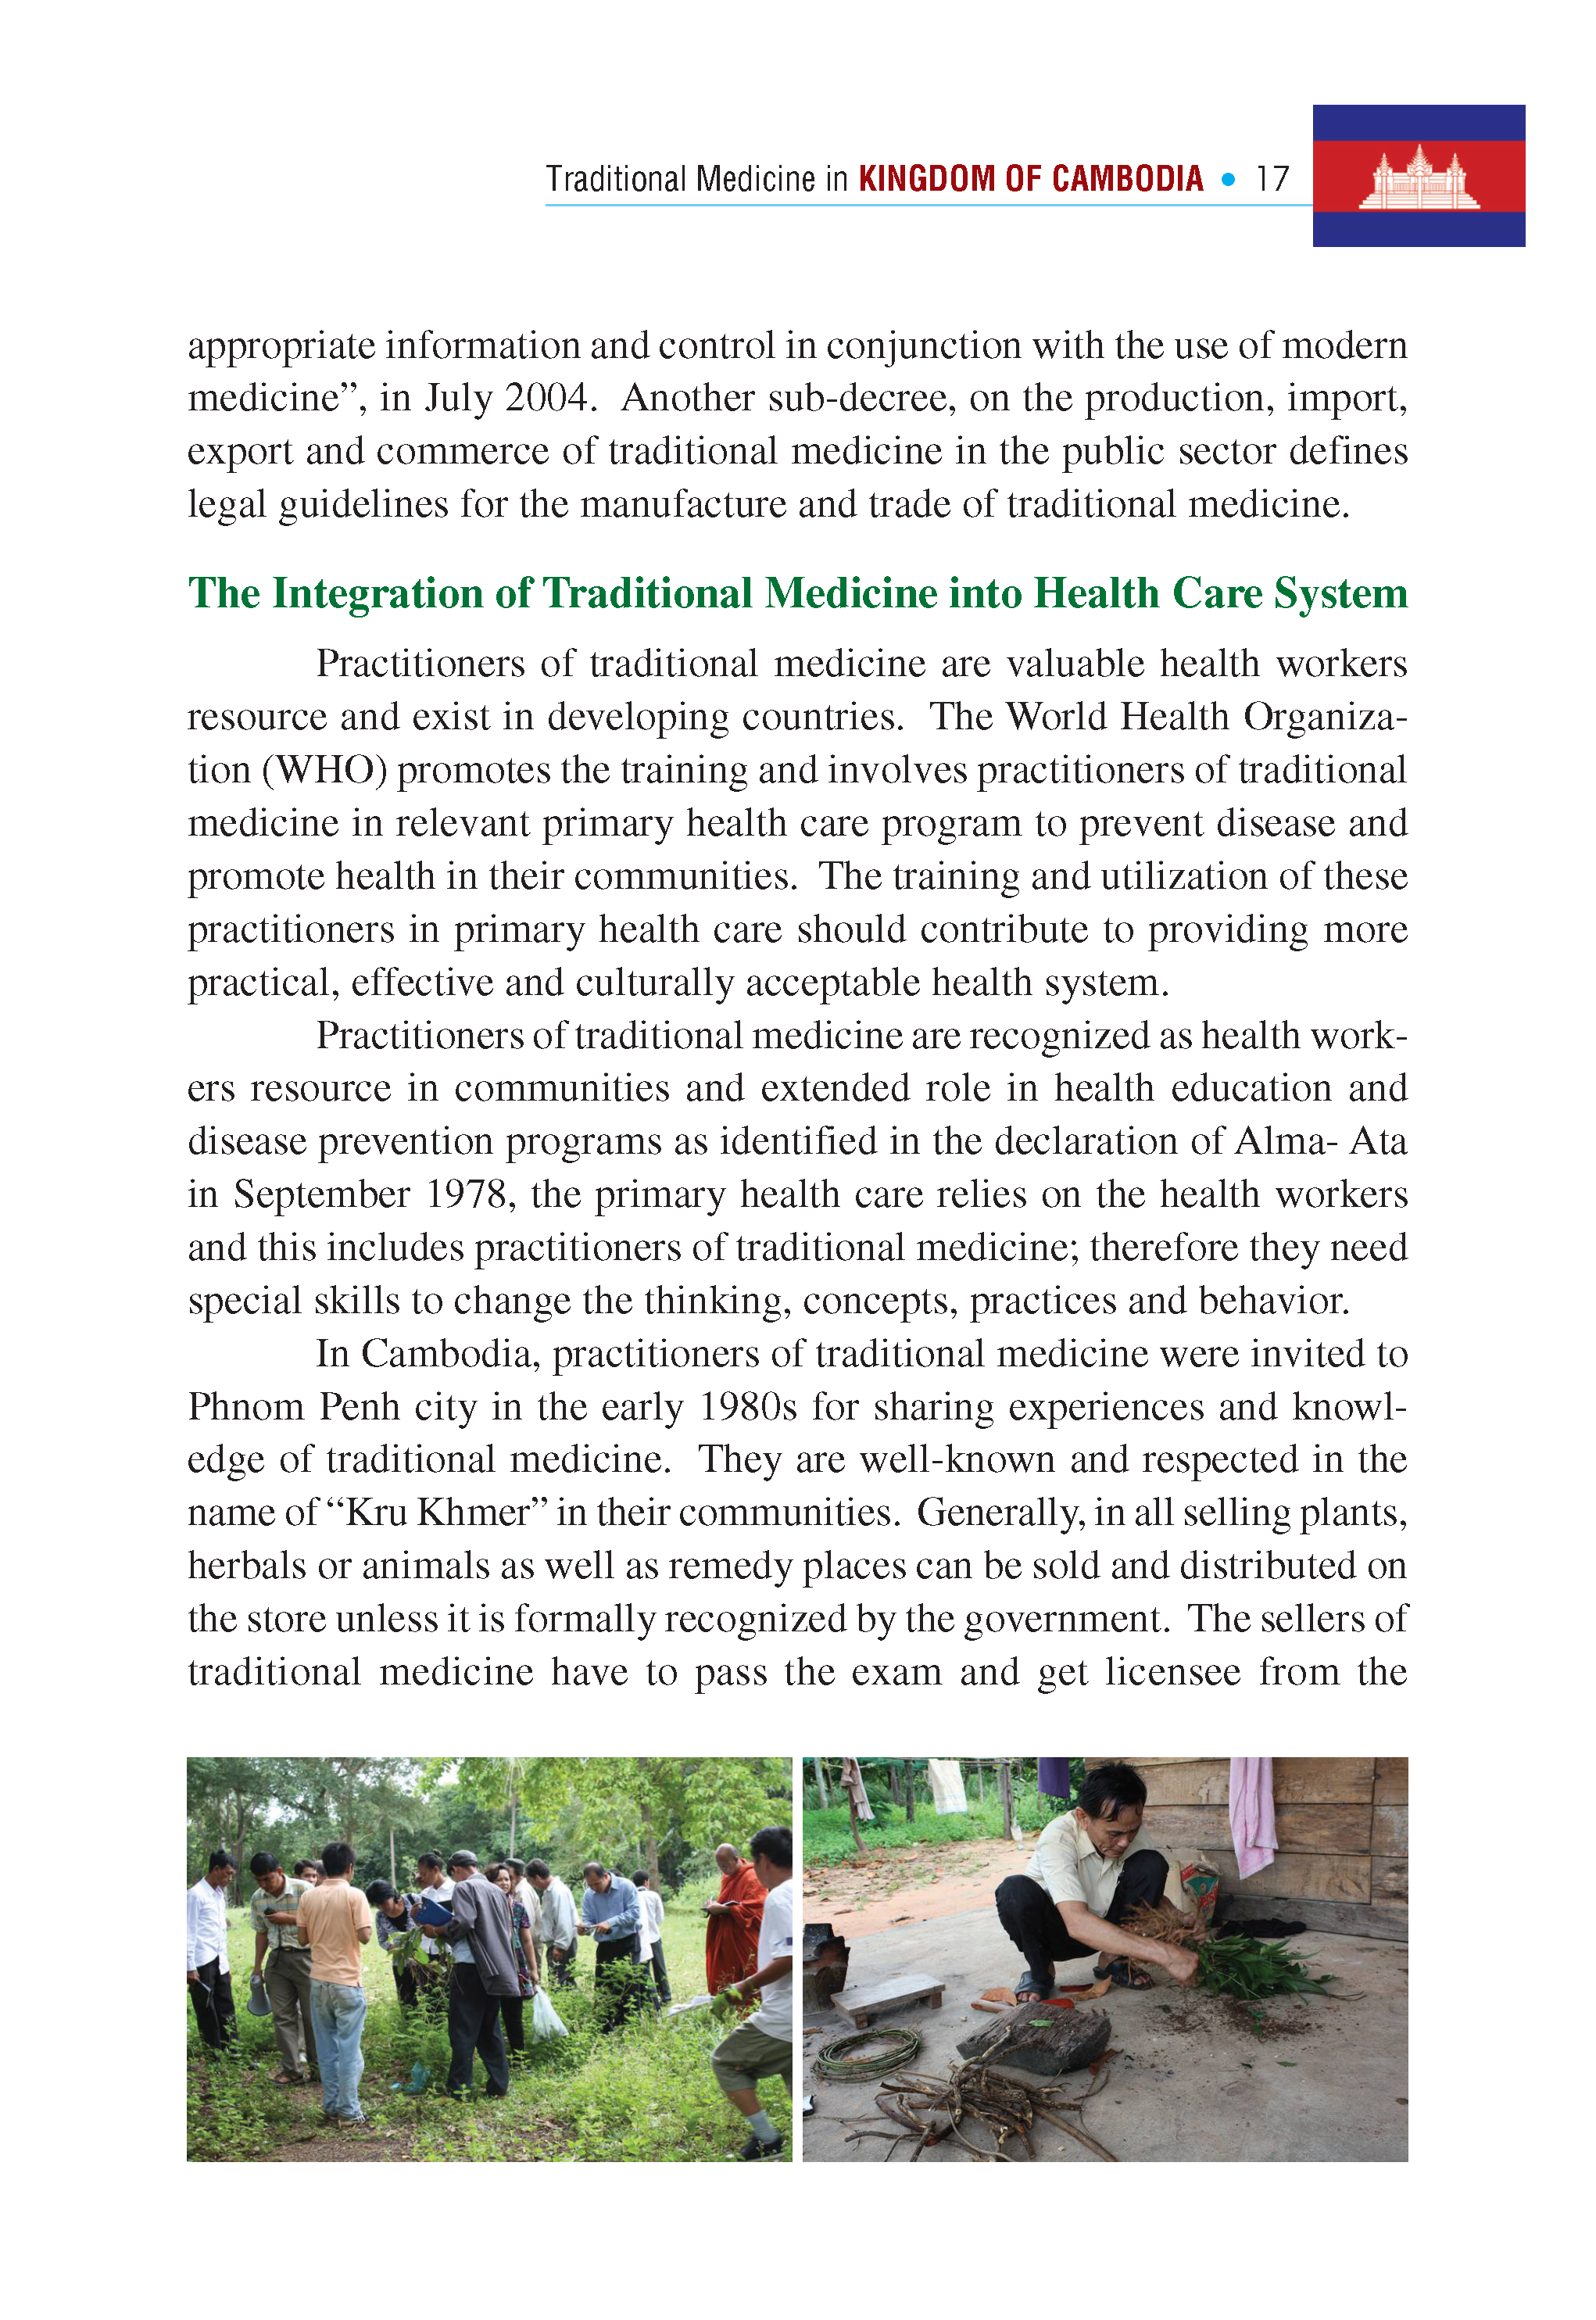 Traditional.Medicine.Cambodia_Page_05.png